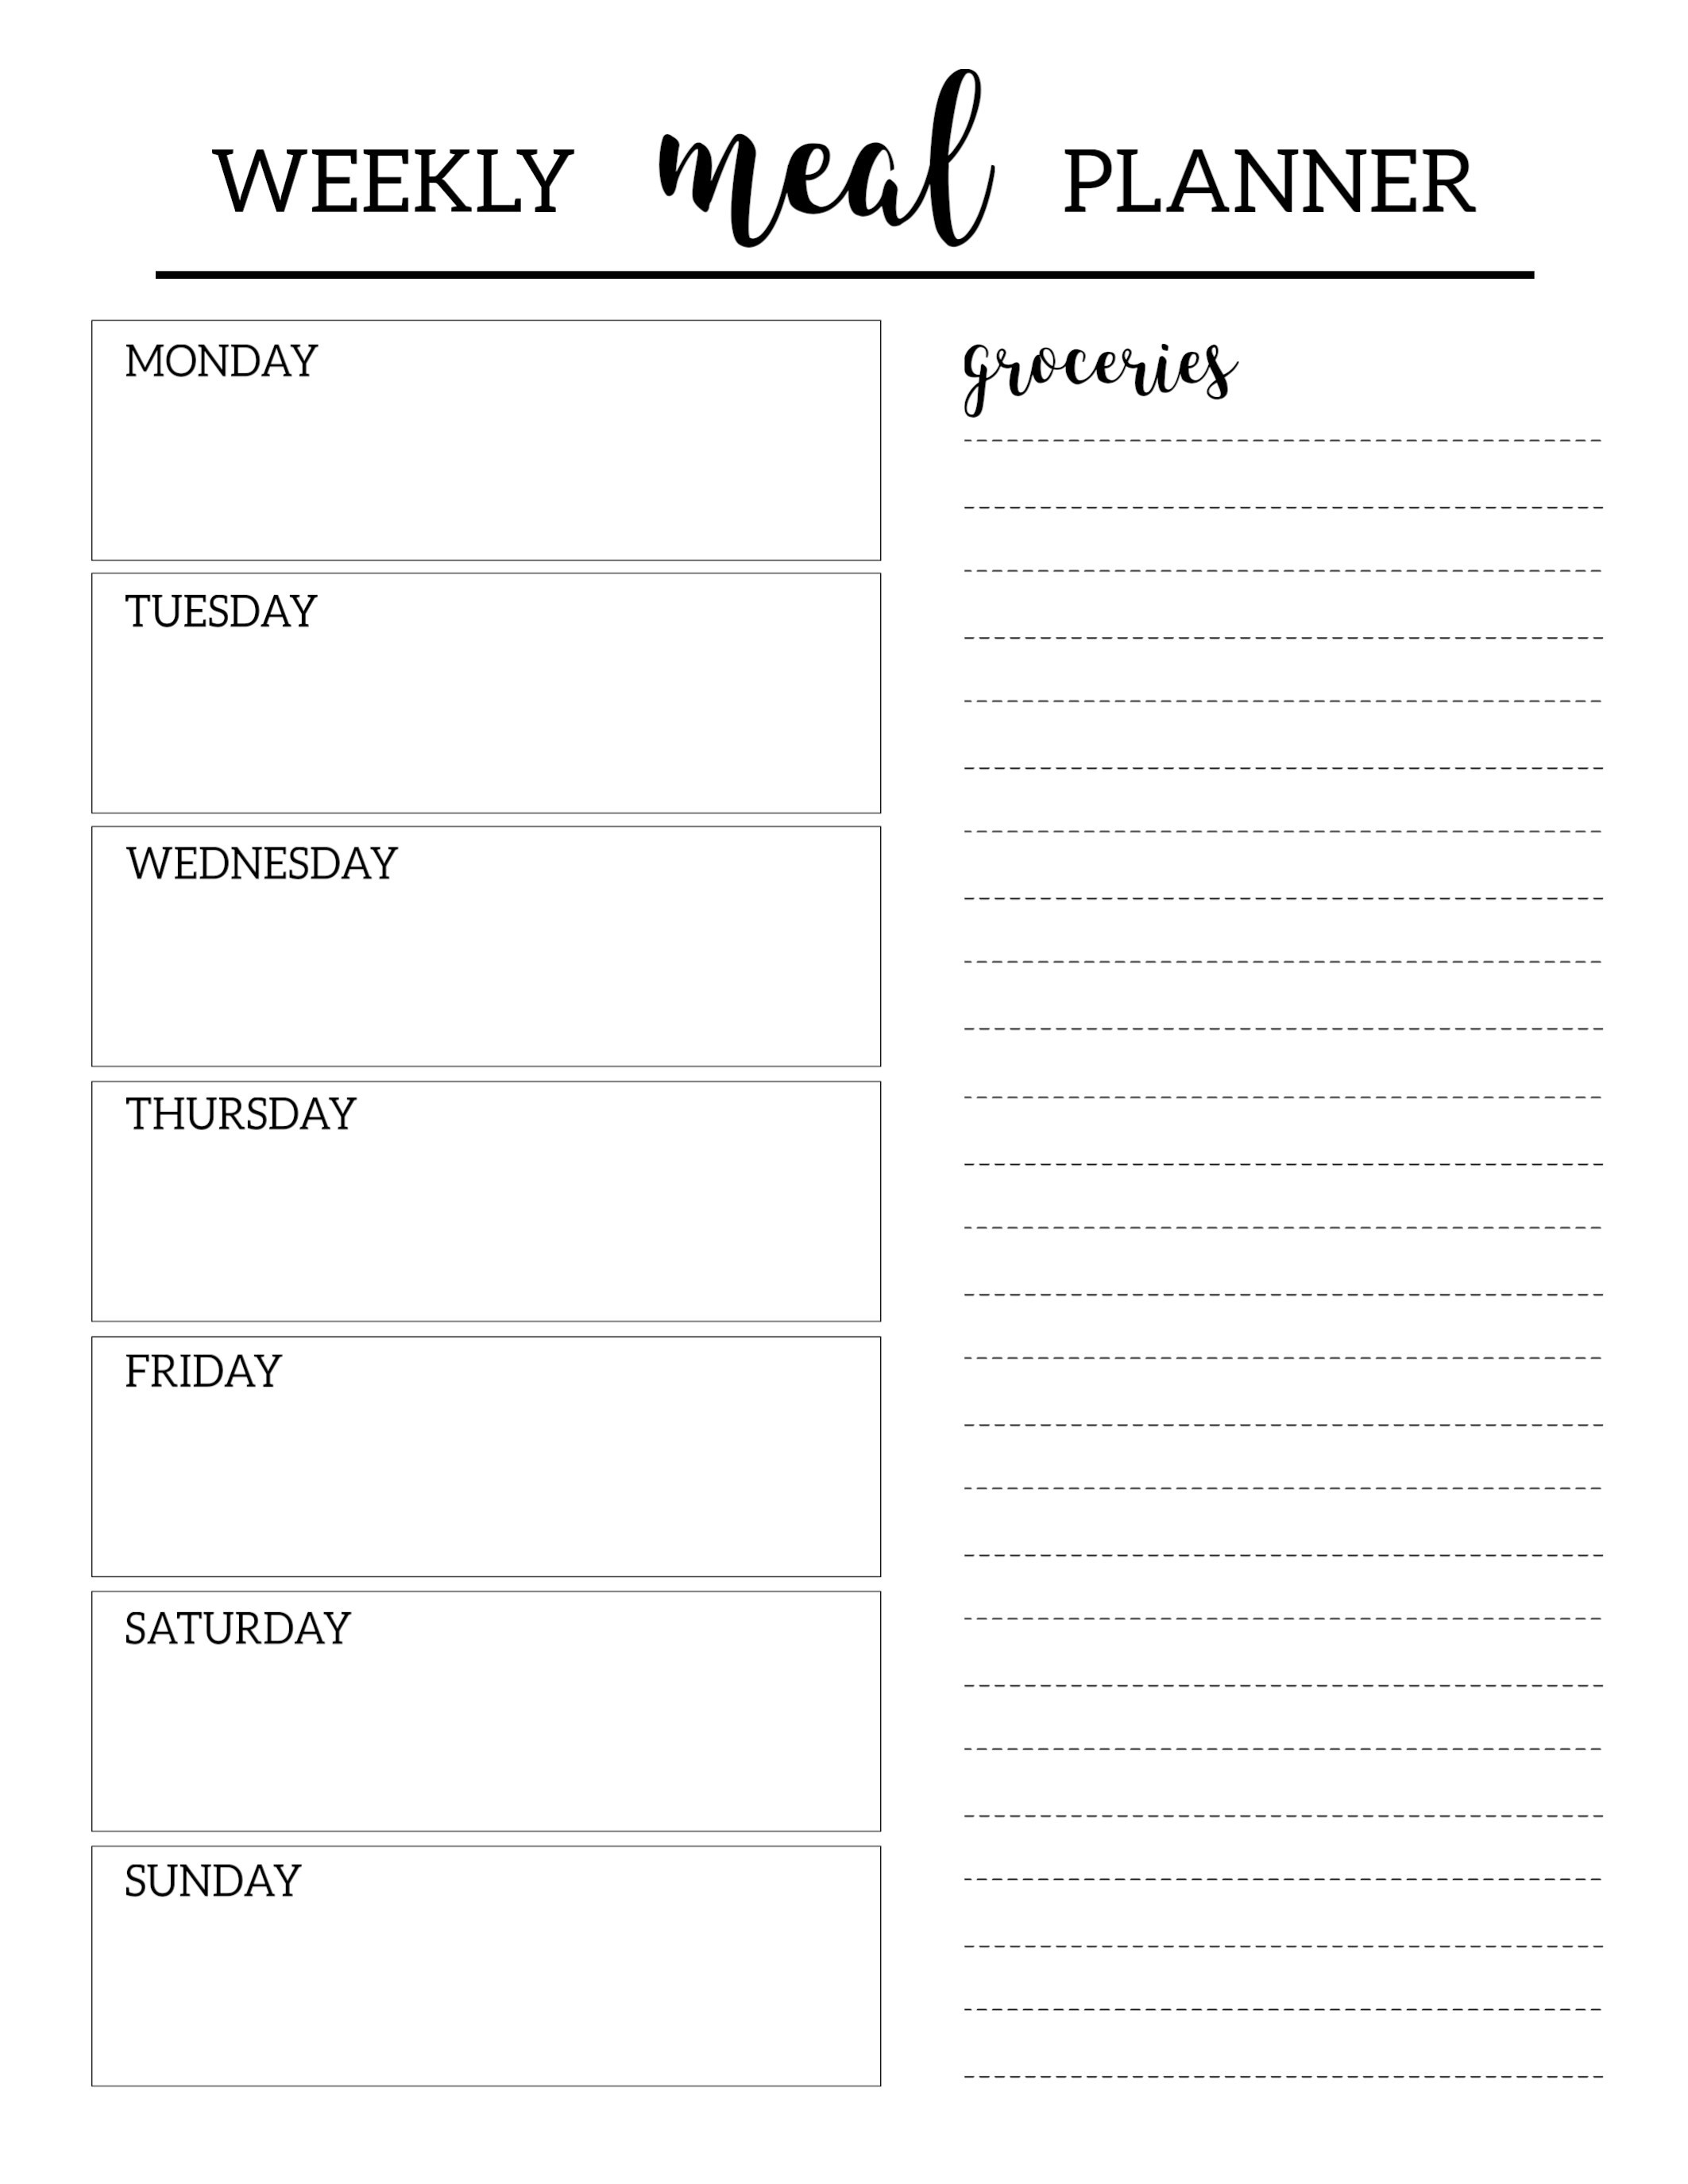 Free Printable Meal Planner Template - Paper Trail Design with regard to Meal Planner Template With Grocery List 26069